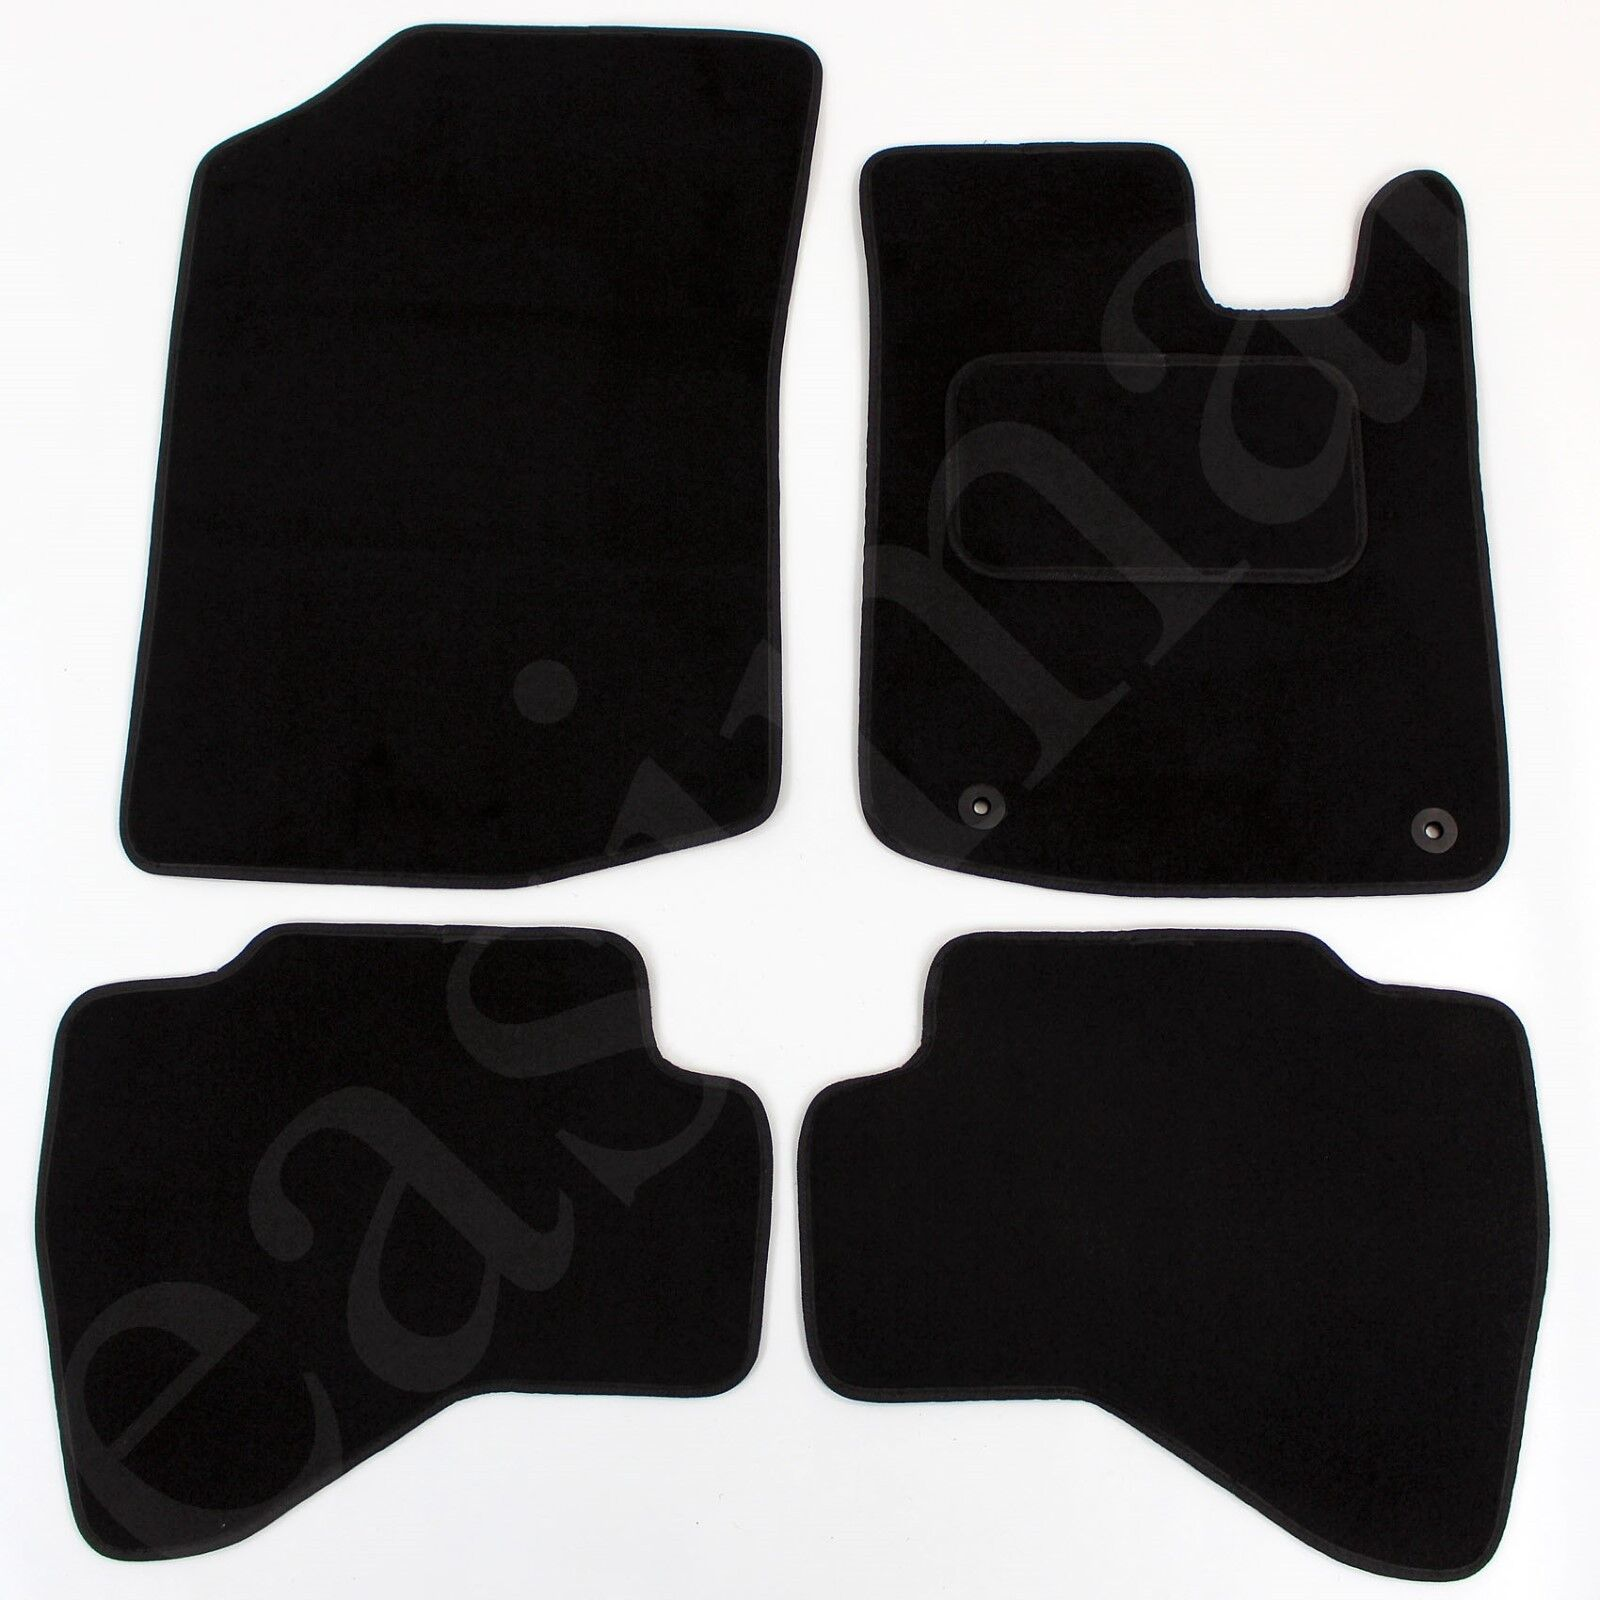 Car Parts - Toyota Aygo 2005-2014 Tailored Carpet Car Mats Black 4pc Floor set 2 clips